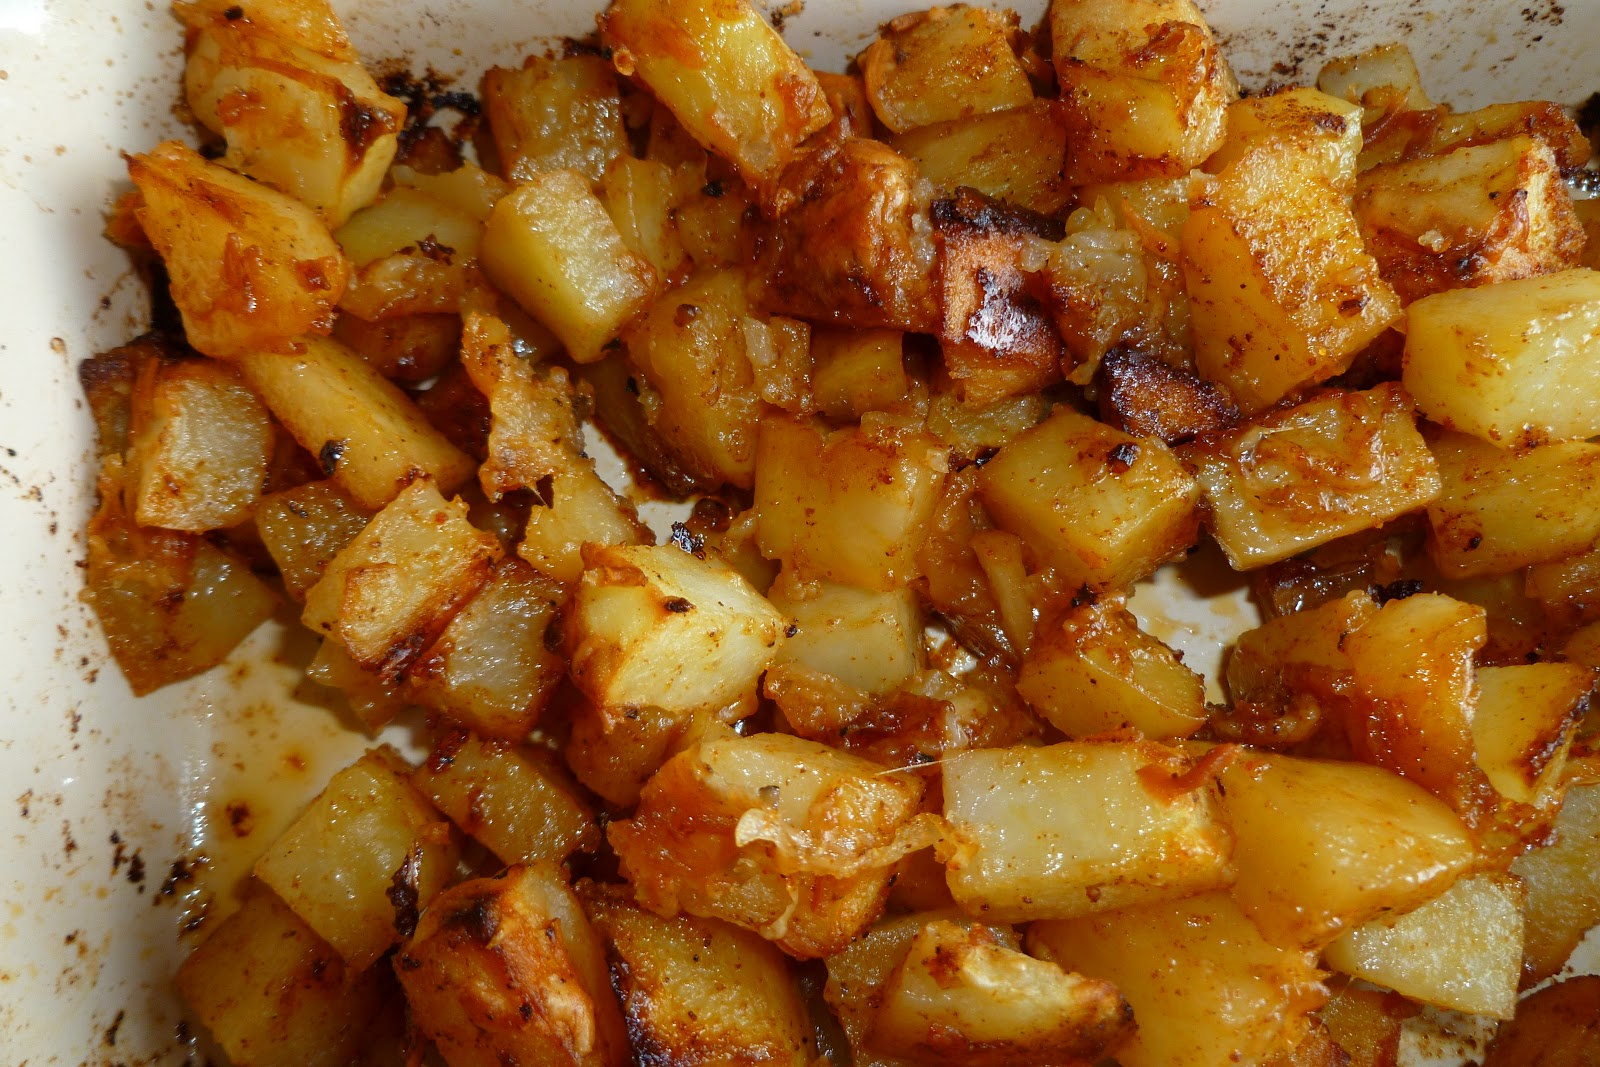 The Pastry Chef's Baking: Parmesan Roasted Potatoes